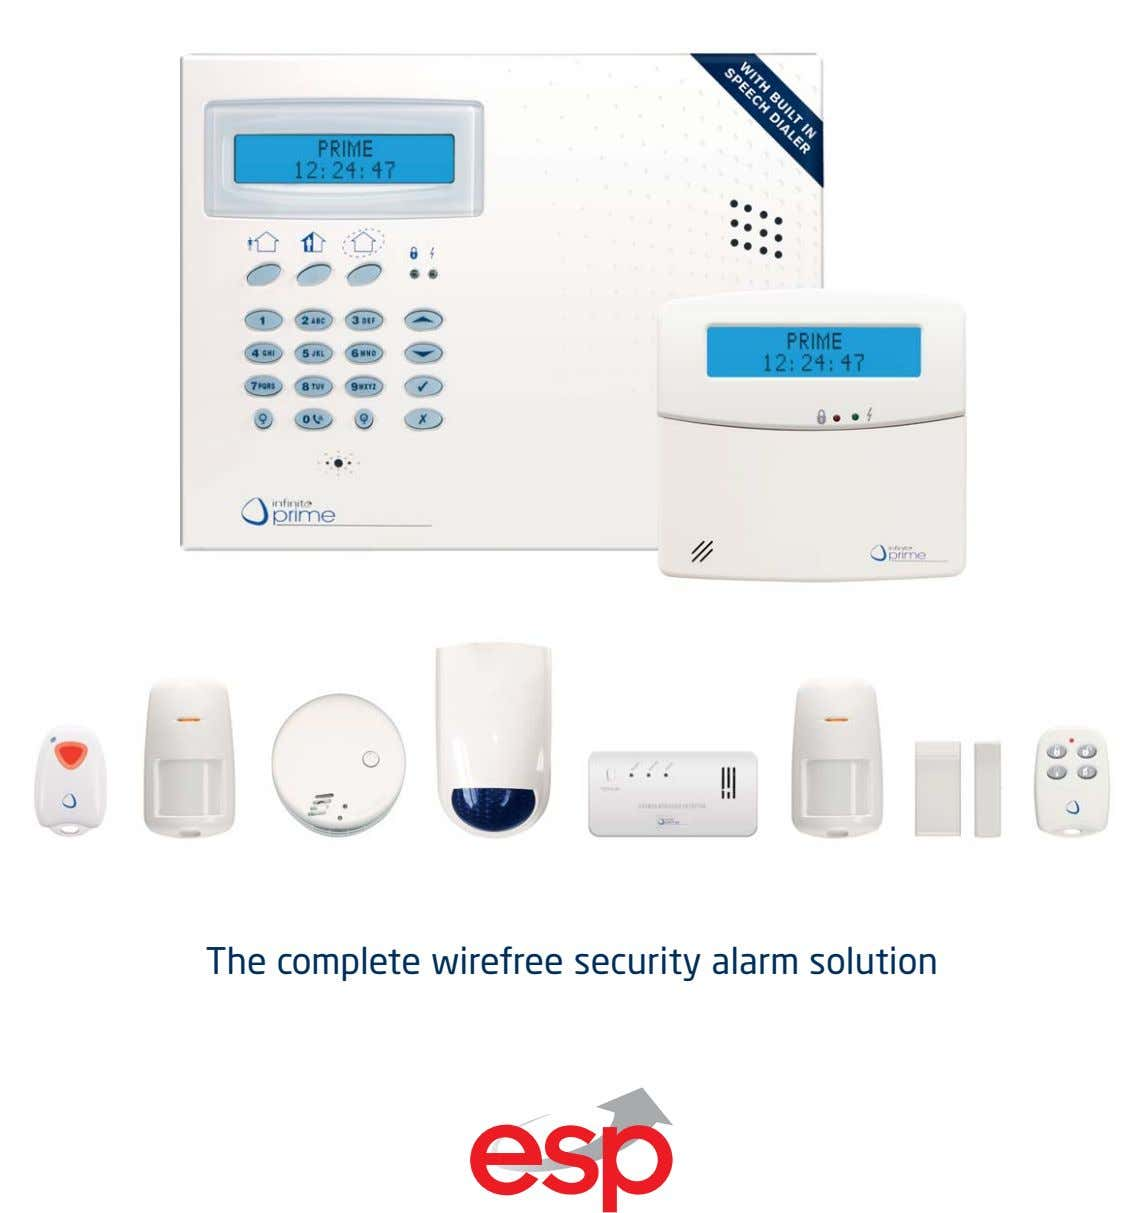 The complete wirefree security alarm solution